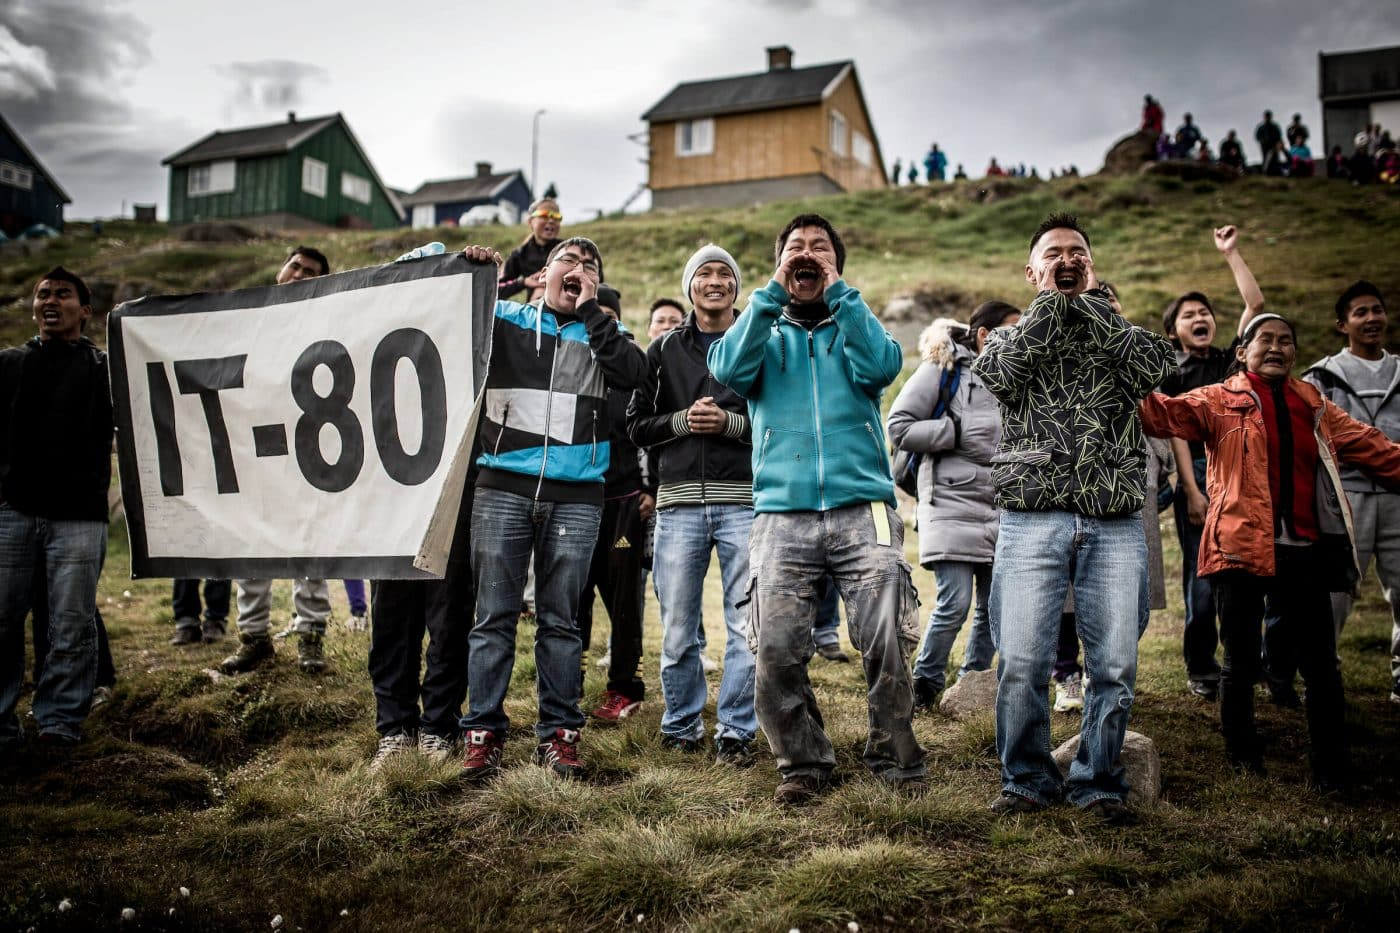 IT-80 football supporters from the village Isortoq at the 2013 East Greenland football championships. By Mads Pihl